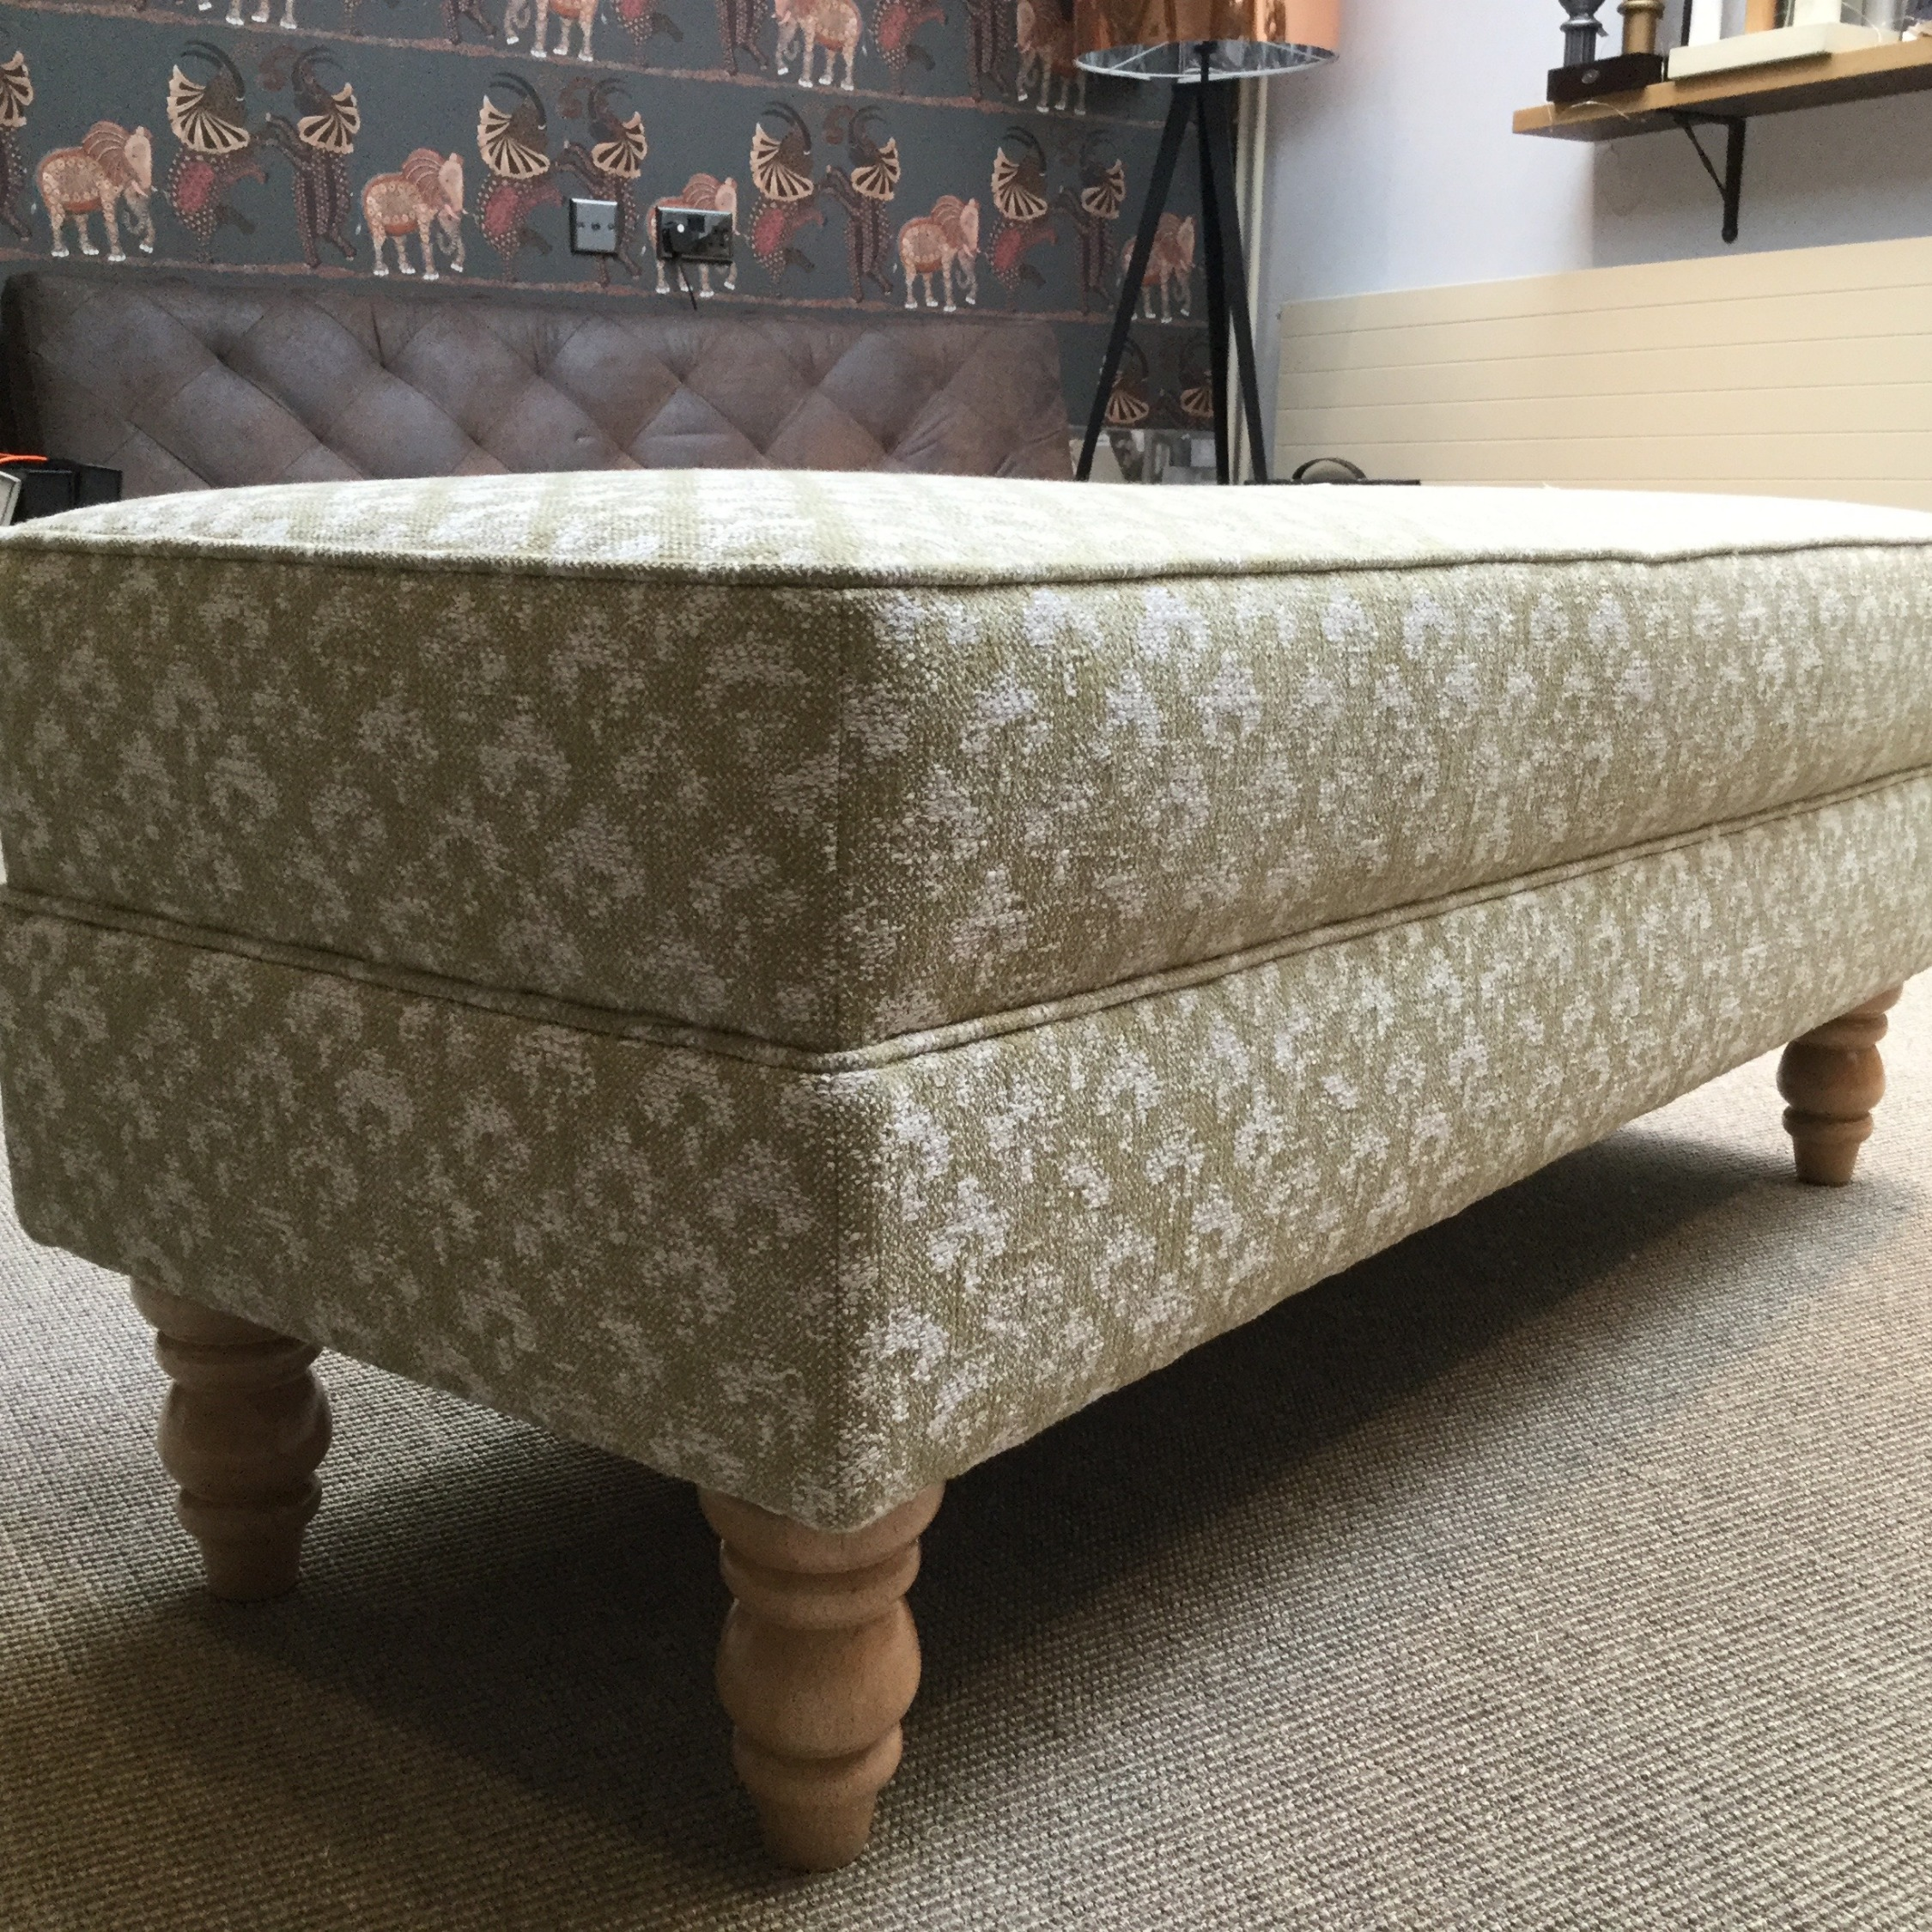 Re-upholstered Ottoman